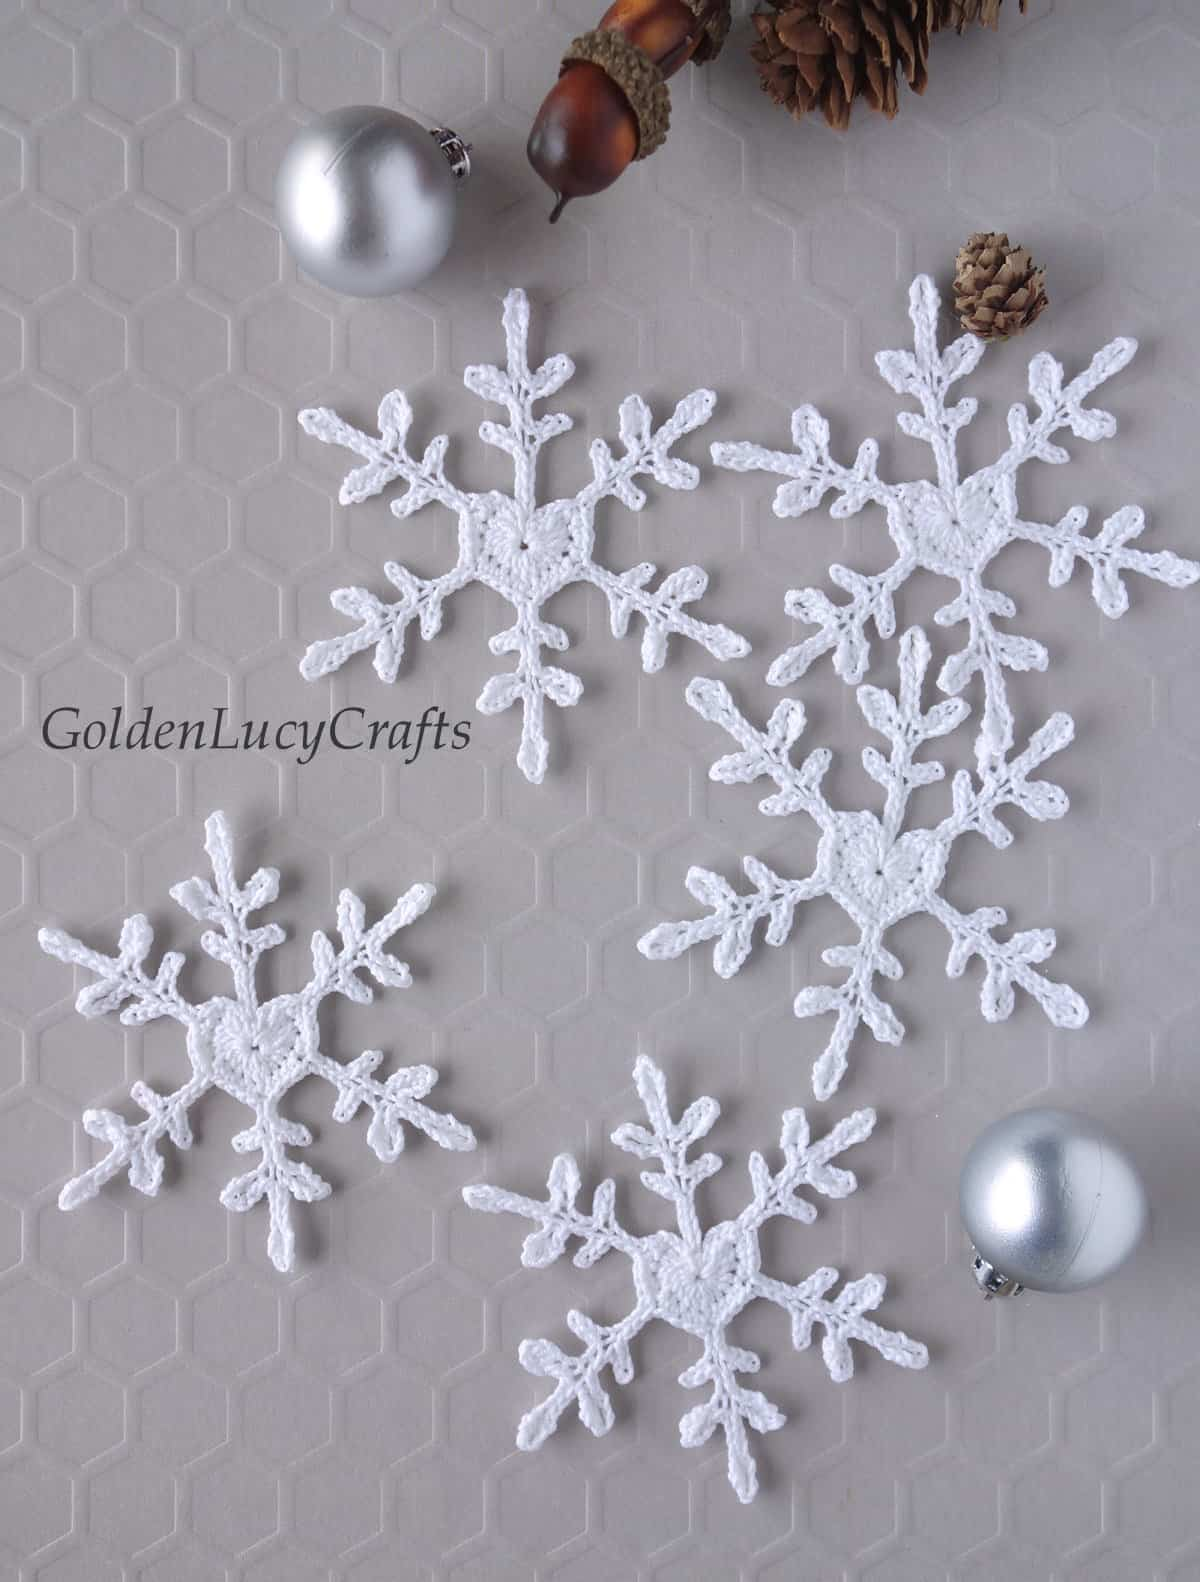 Crochet white snowflakes with heart center, small silver Christmas ball ornaments, small pinecone and acorns.